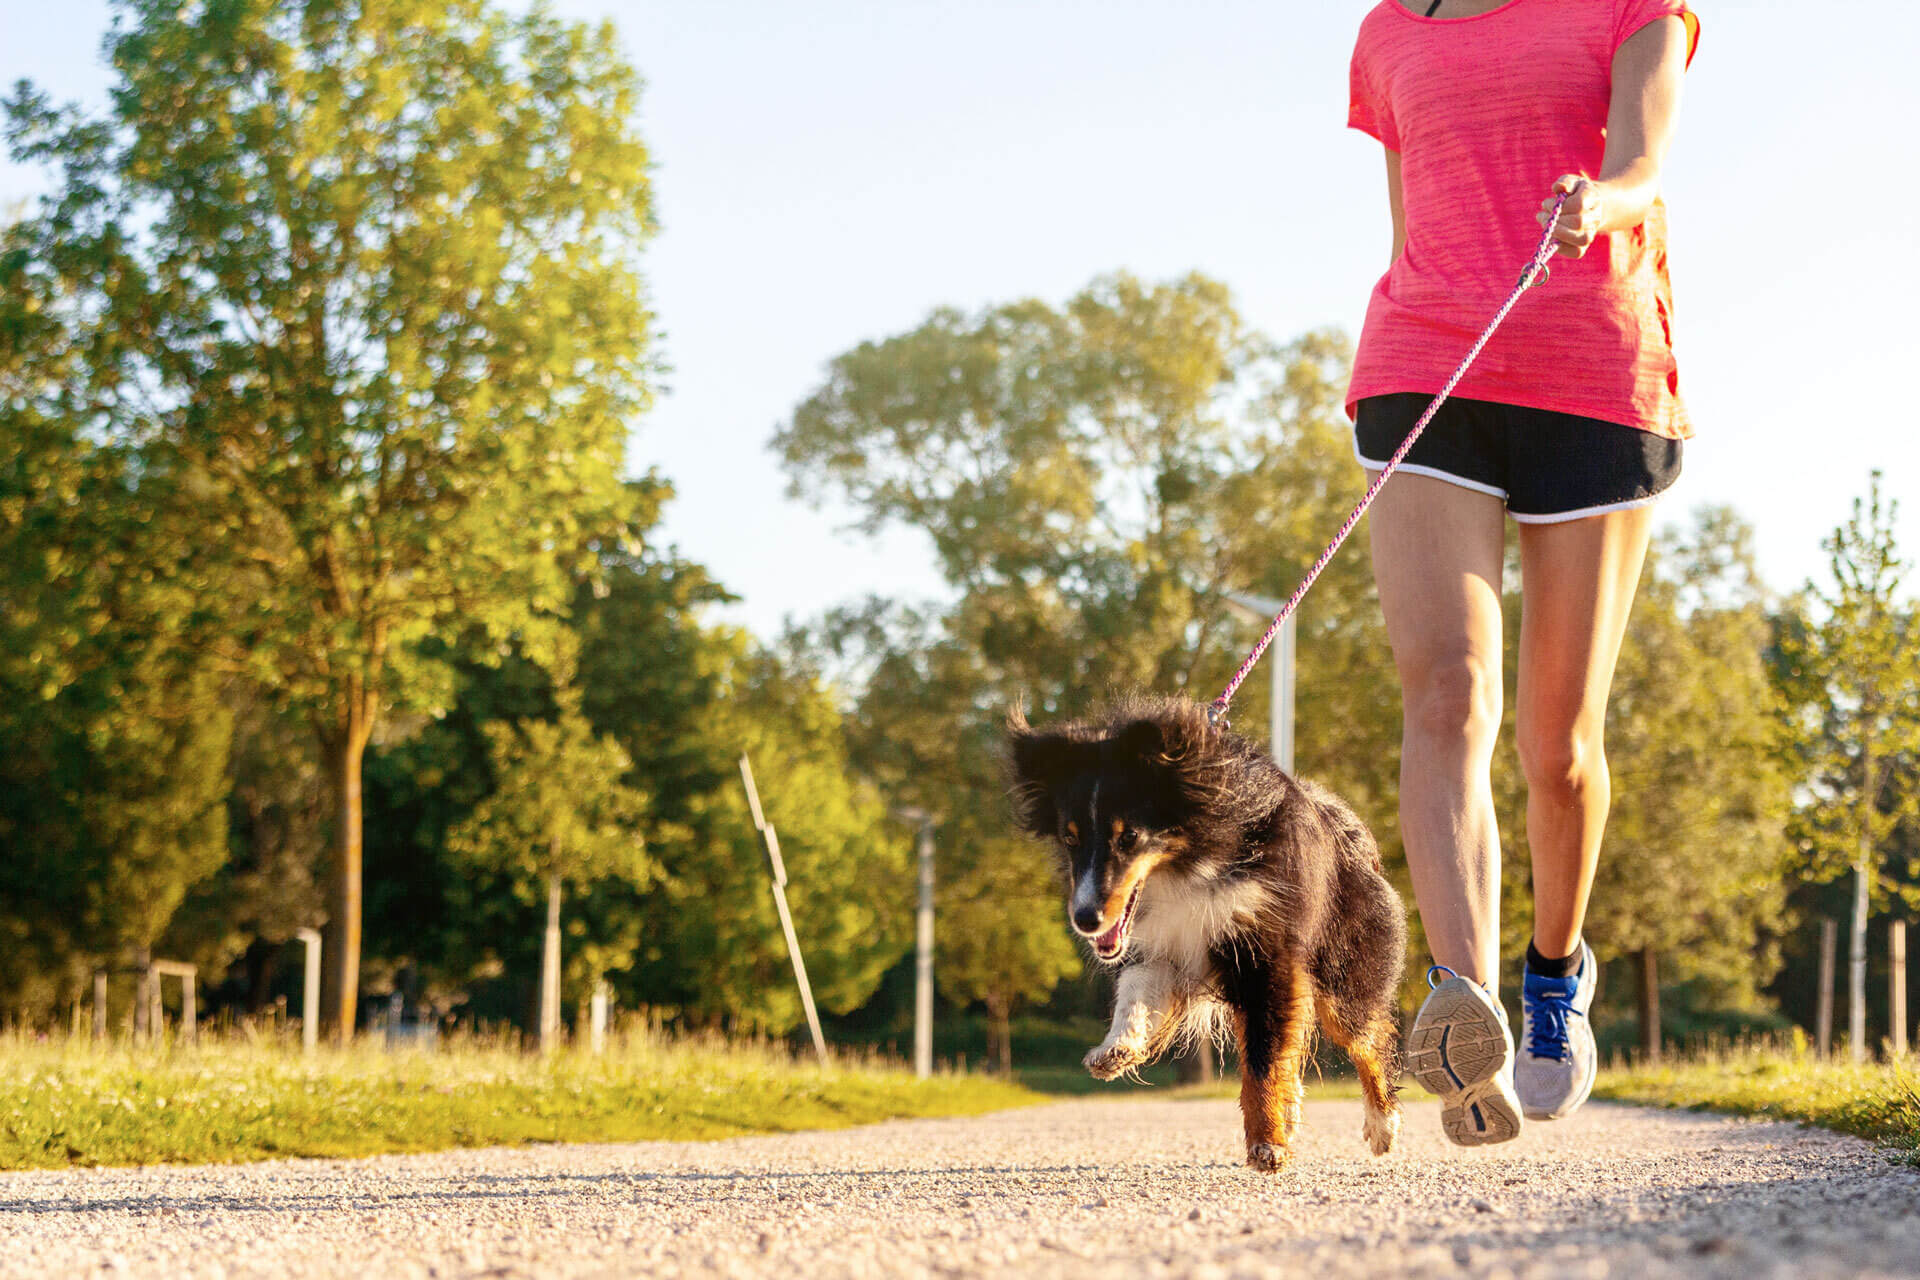 The ultimate guide to dog obesity, fitness and activity monitoring